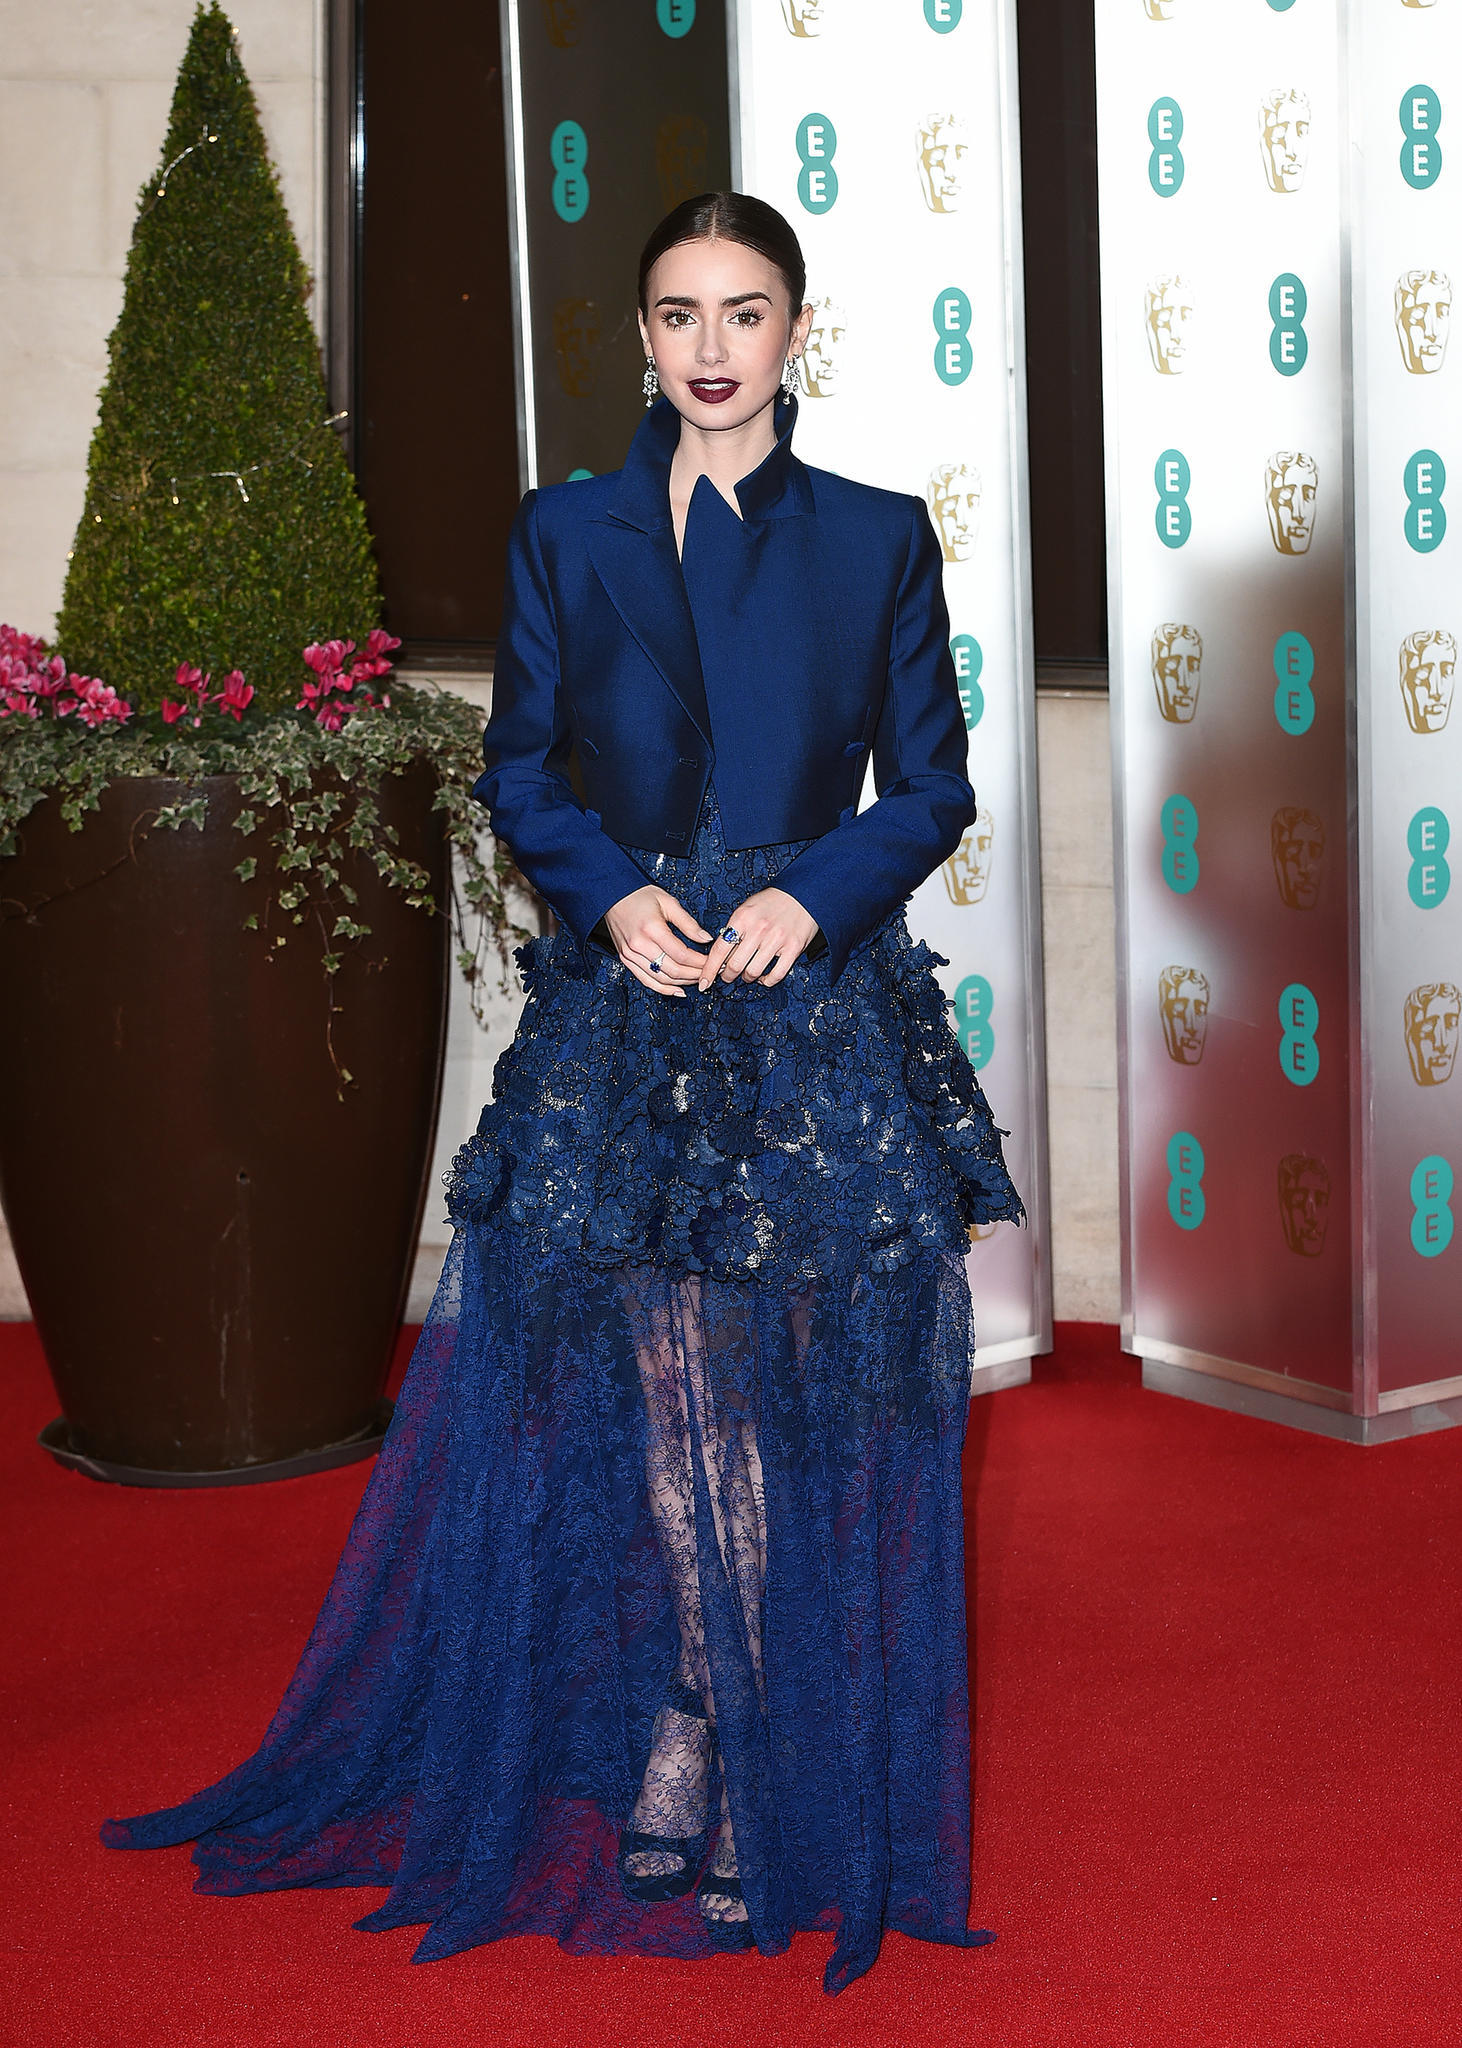 Lily Collins in der Trendfarbe Princess Blue.